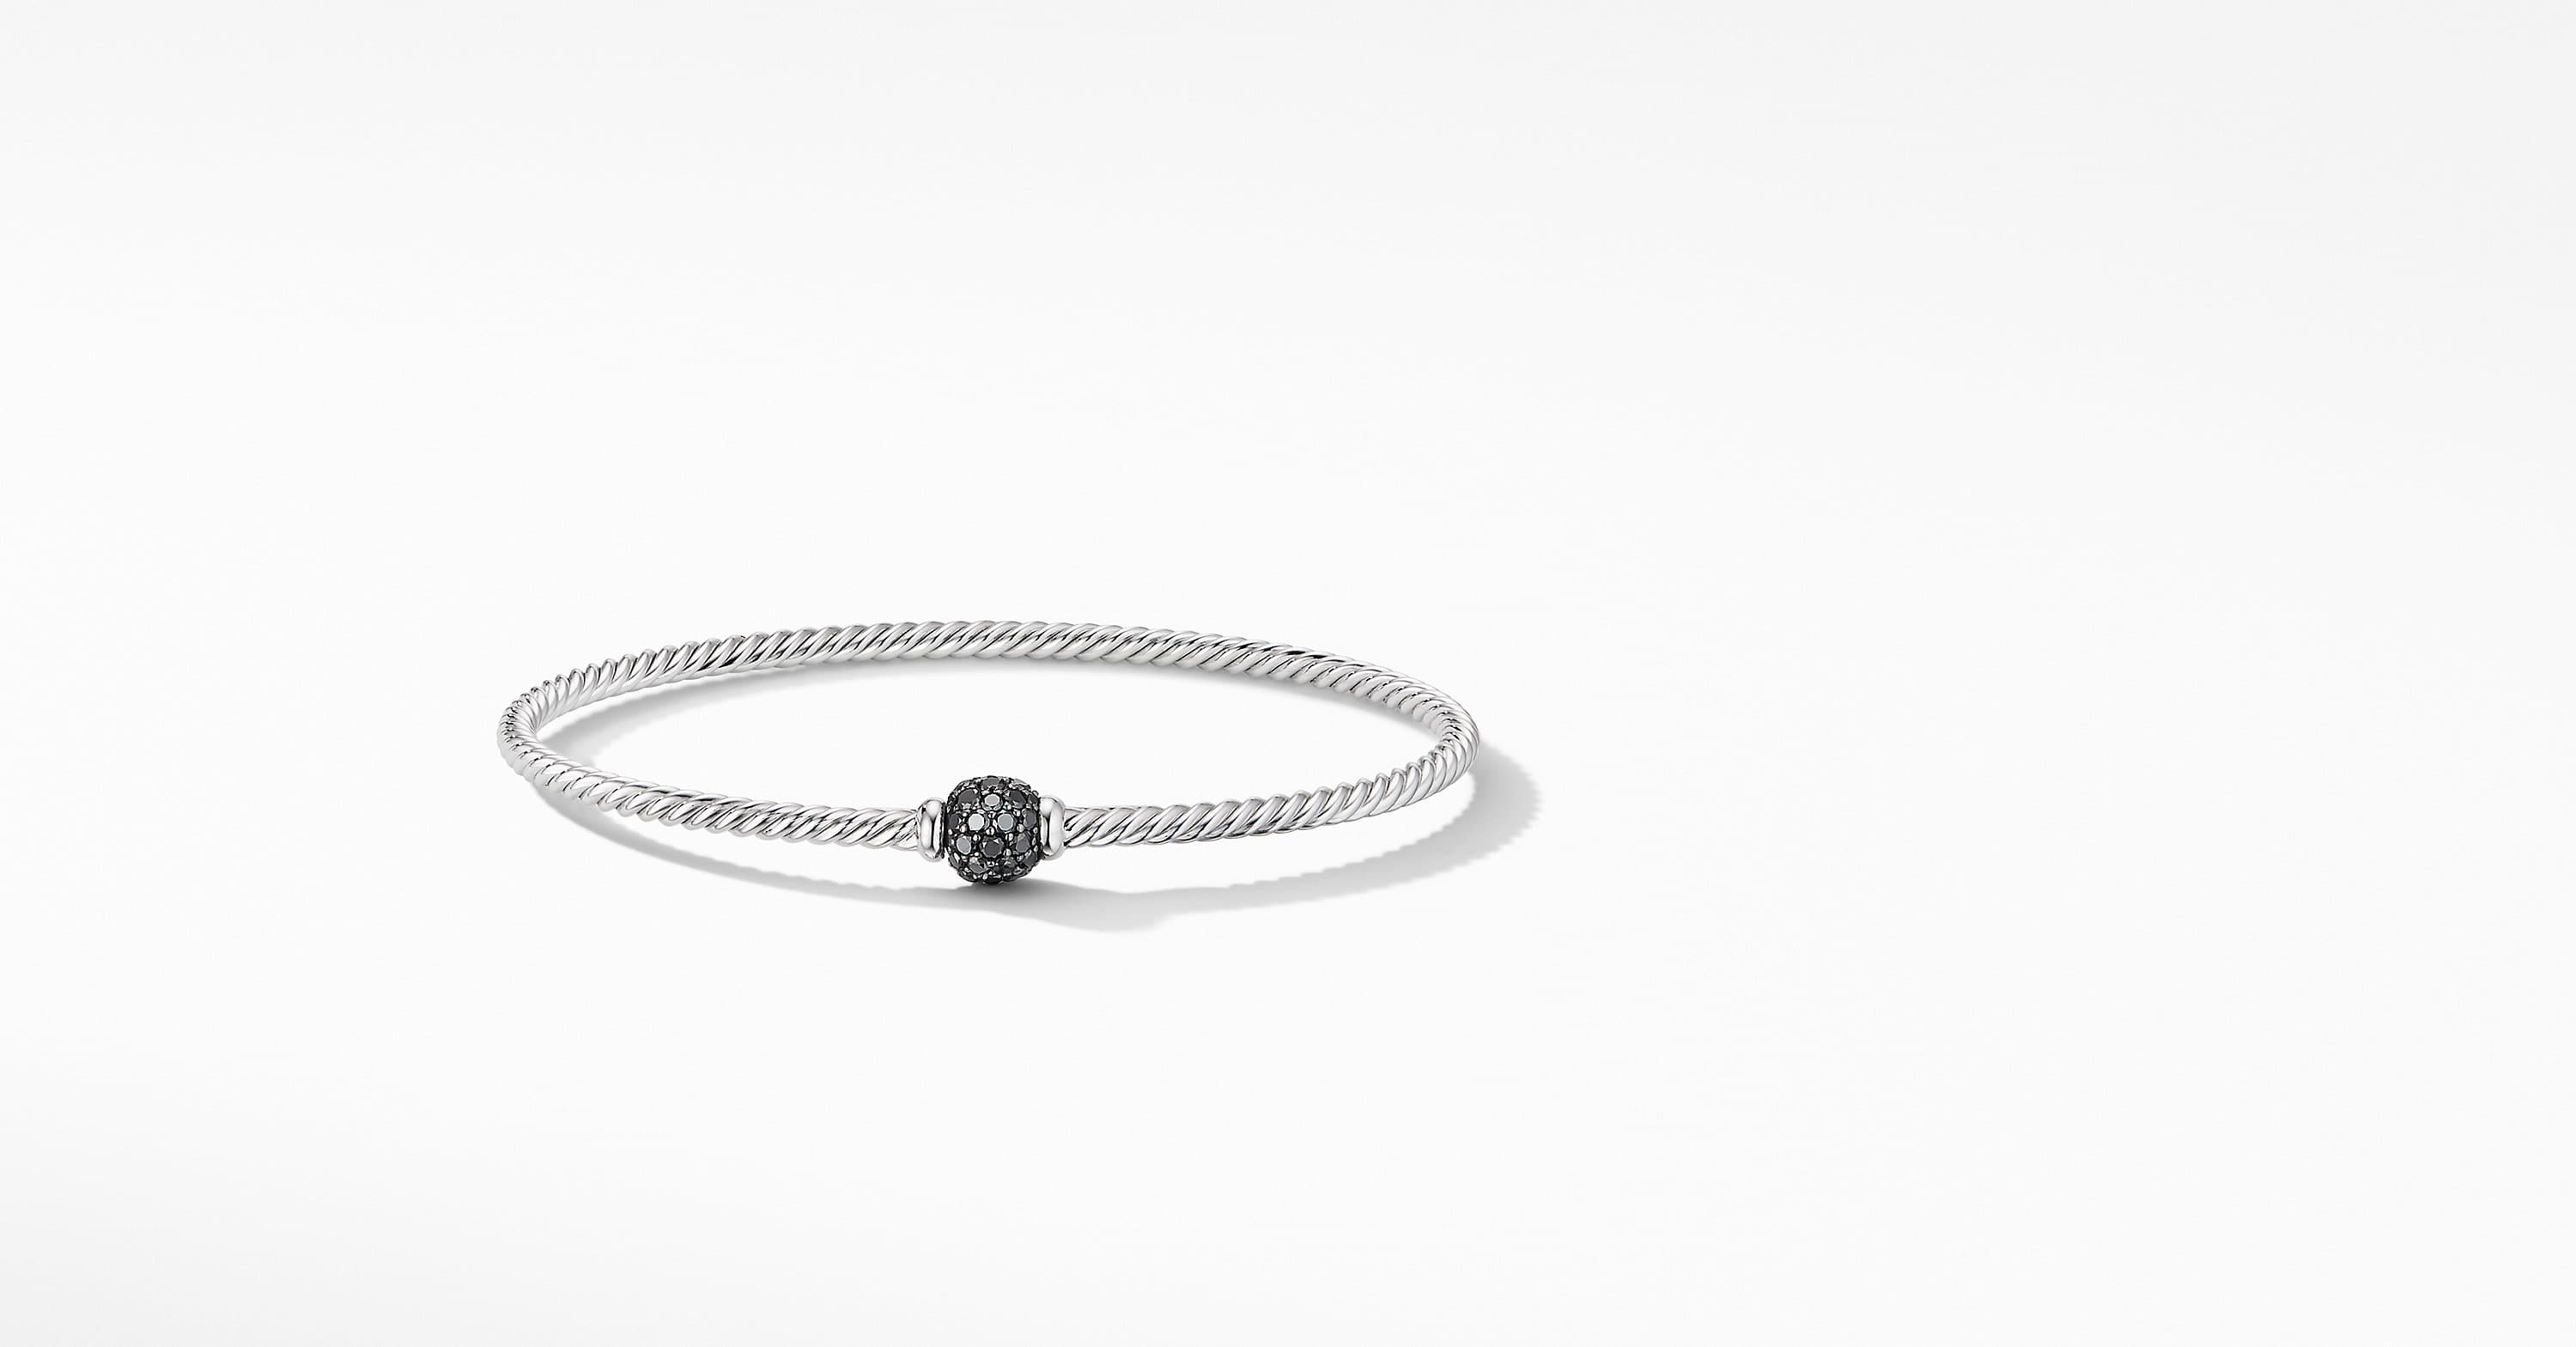 Solari Center Station Bracelet in 18K White Gold